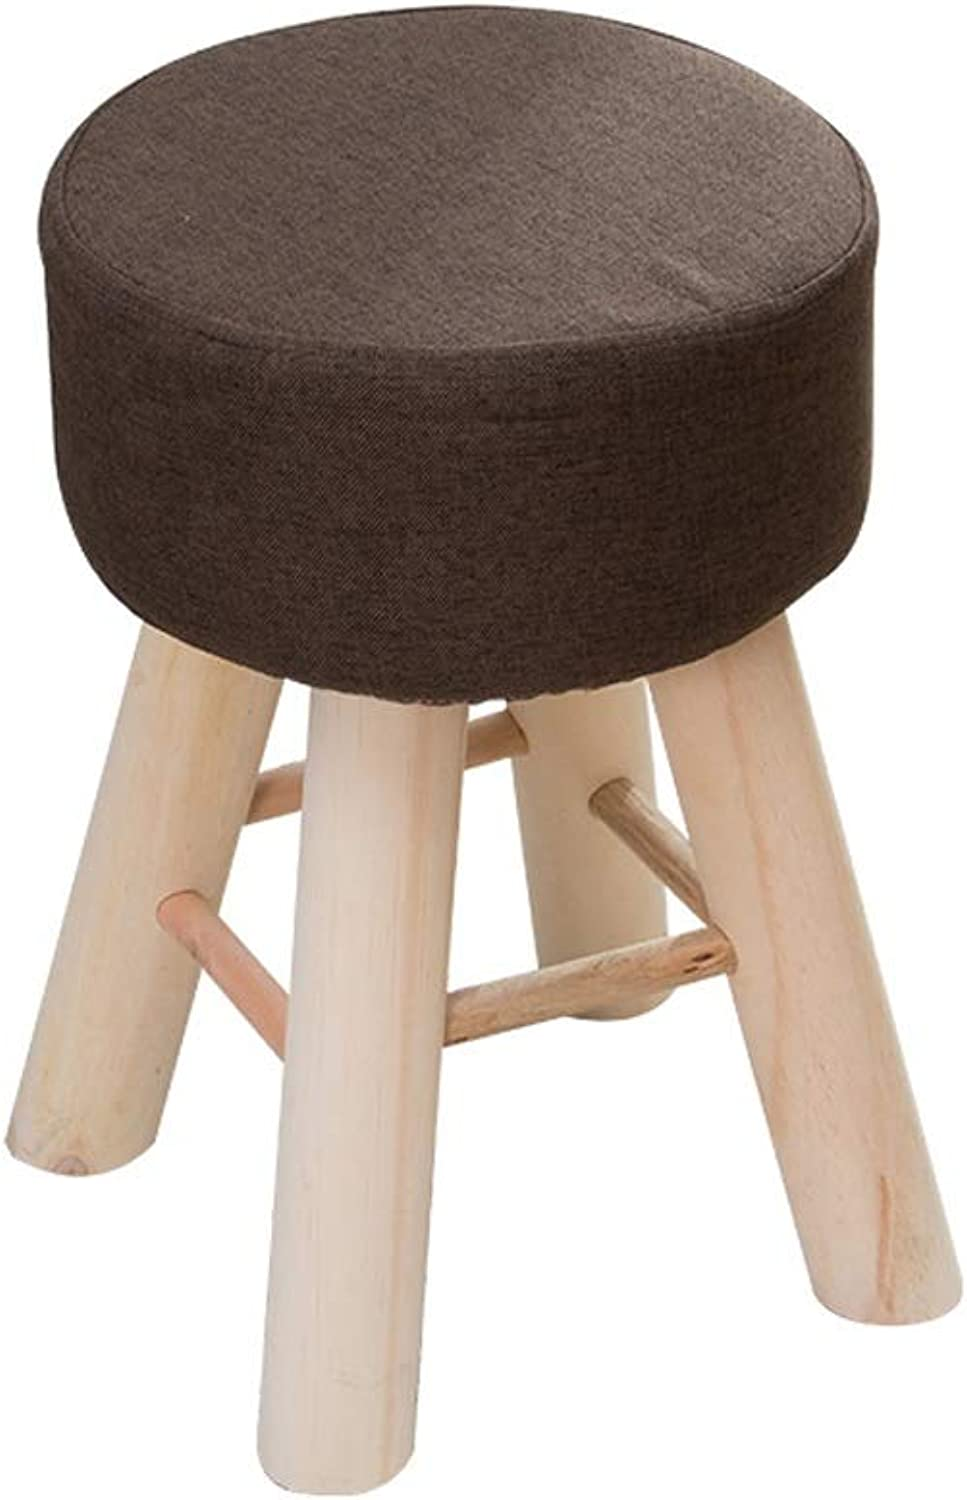 LSLMCS Chair Stool Cloth Cover 4 Legs and Detachable Linen Cover (4 colors)-Upholstered Footstool Round Wooden Support Upholstered Footrest (color   B)